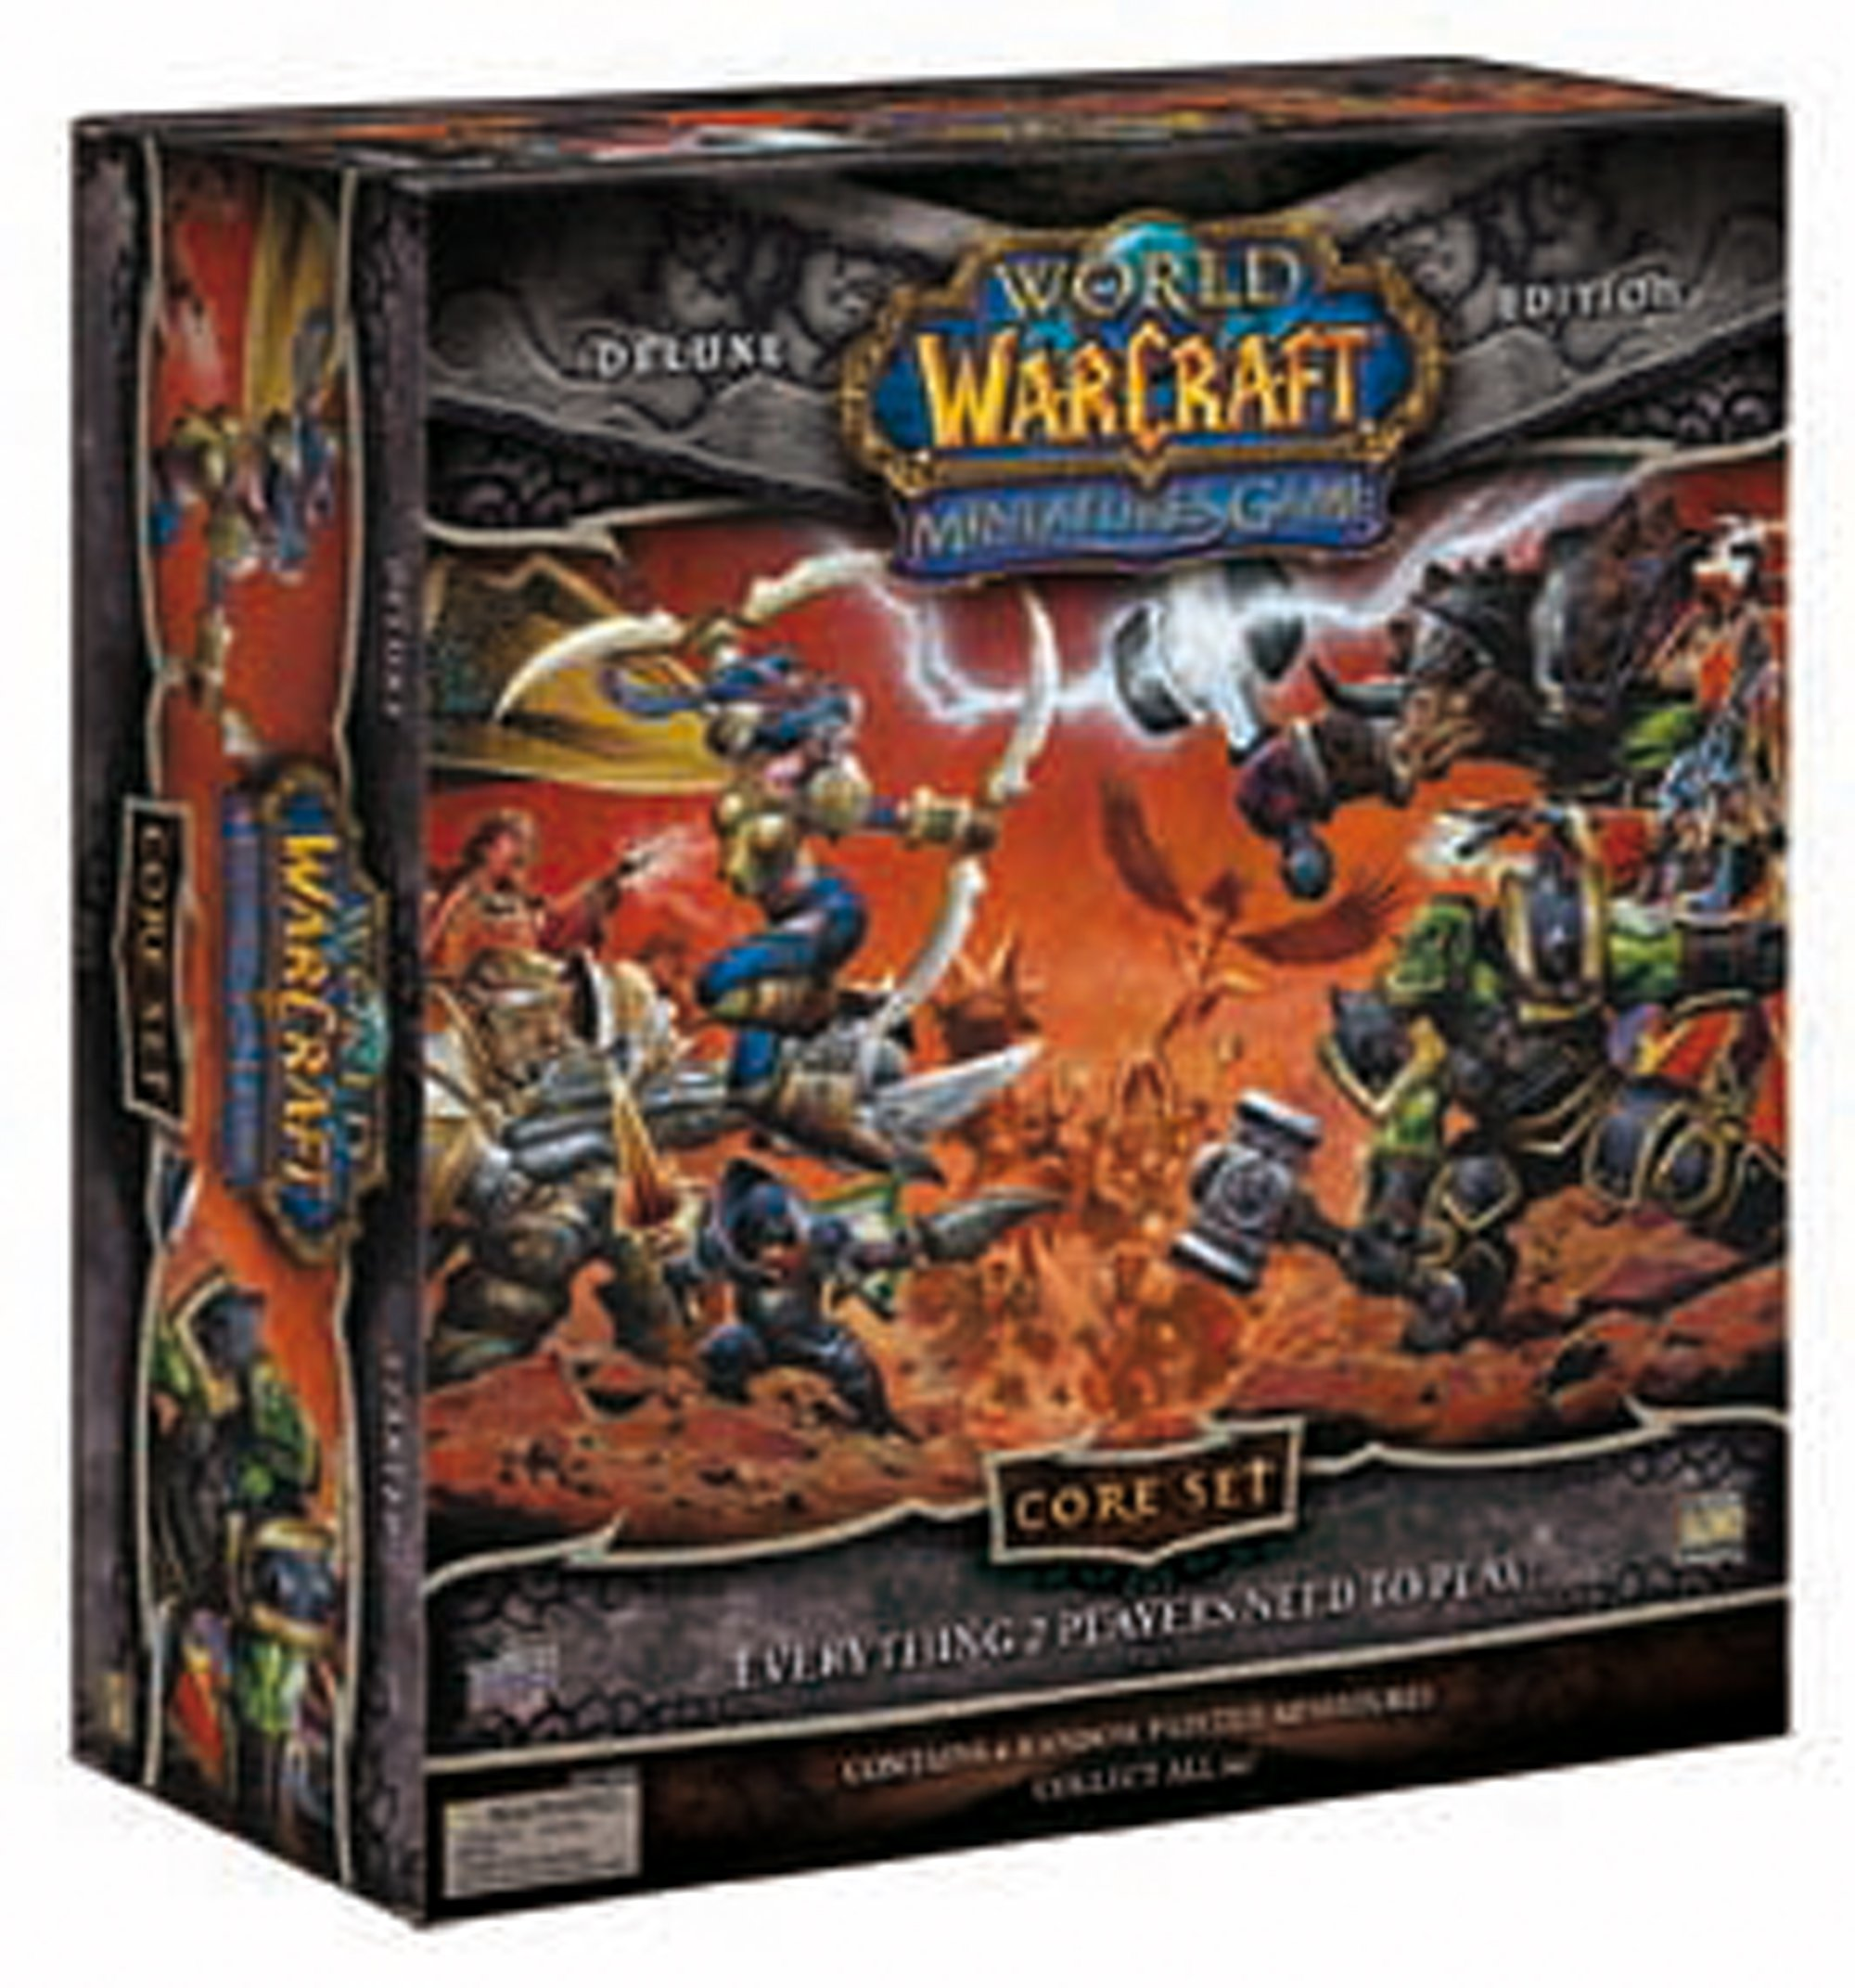 Upper Deck World of Warcraft Miniatures Core Set Deluxe Edition by Upper Deck